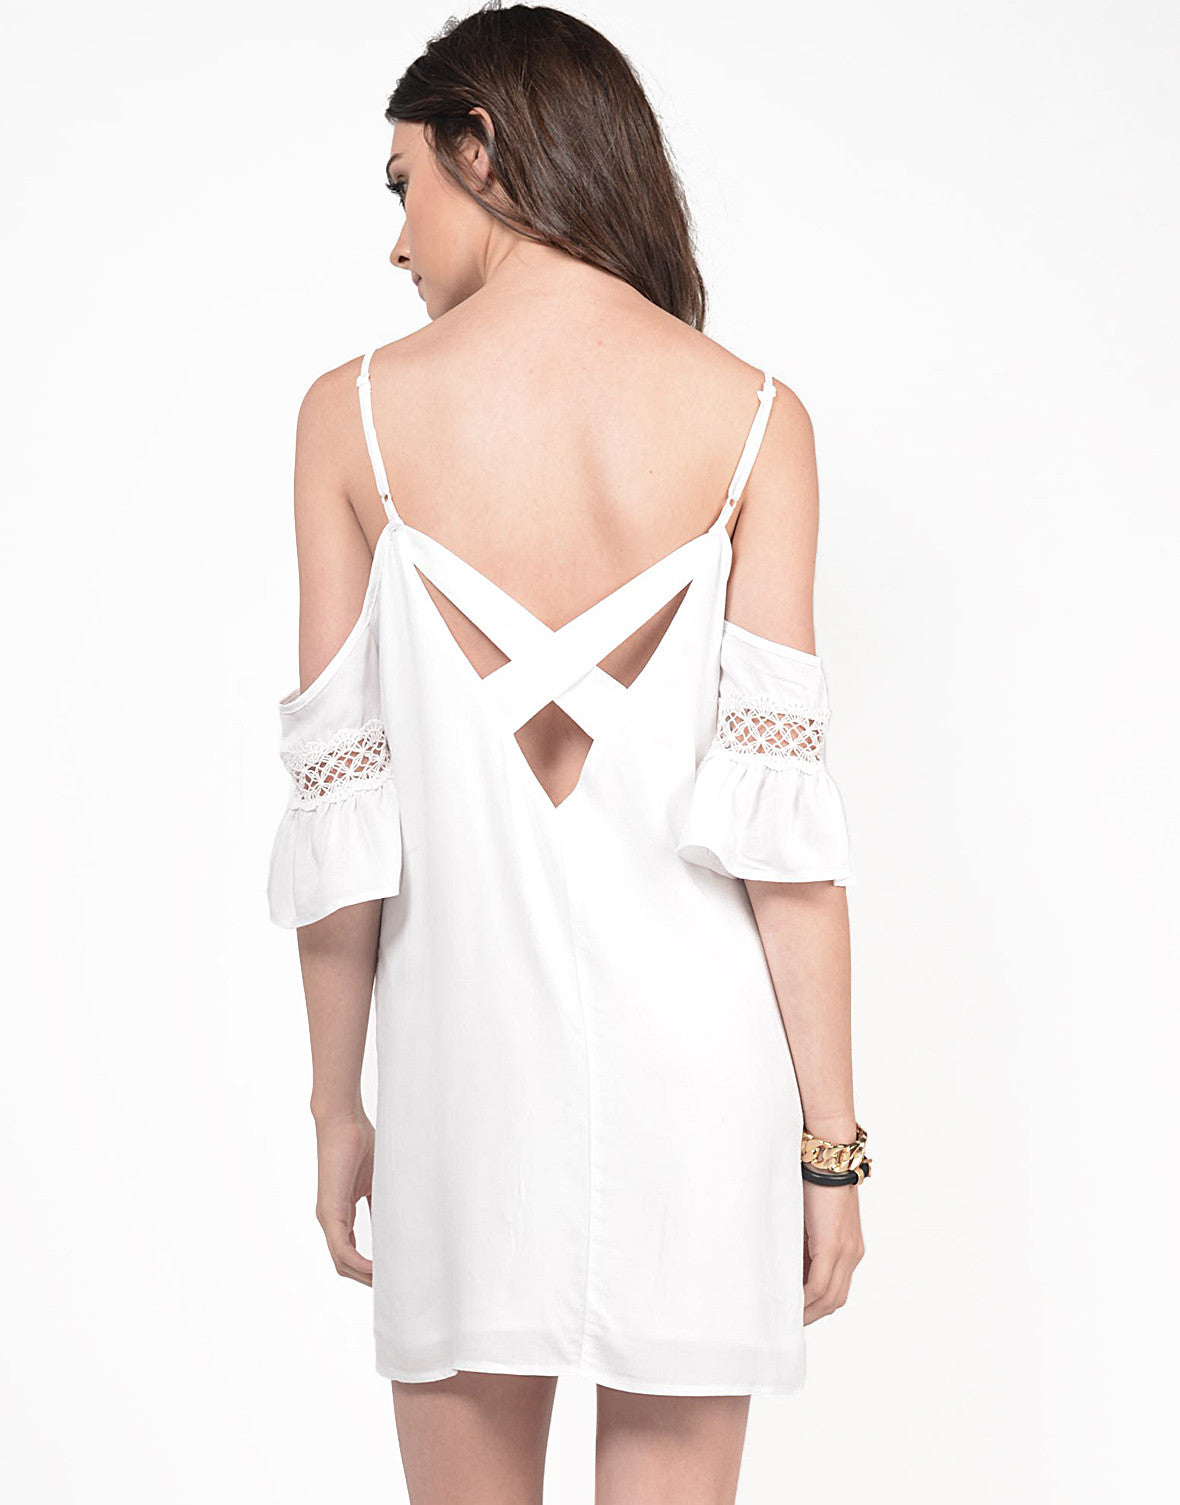 Back View of Cold Shoulder X Dress